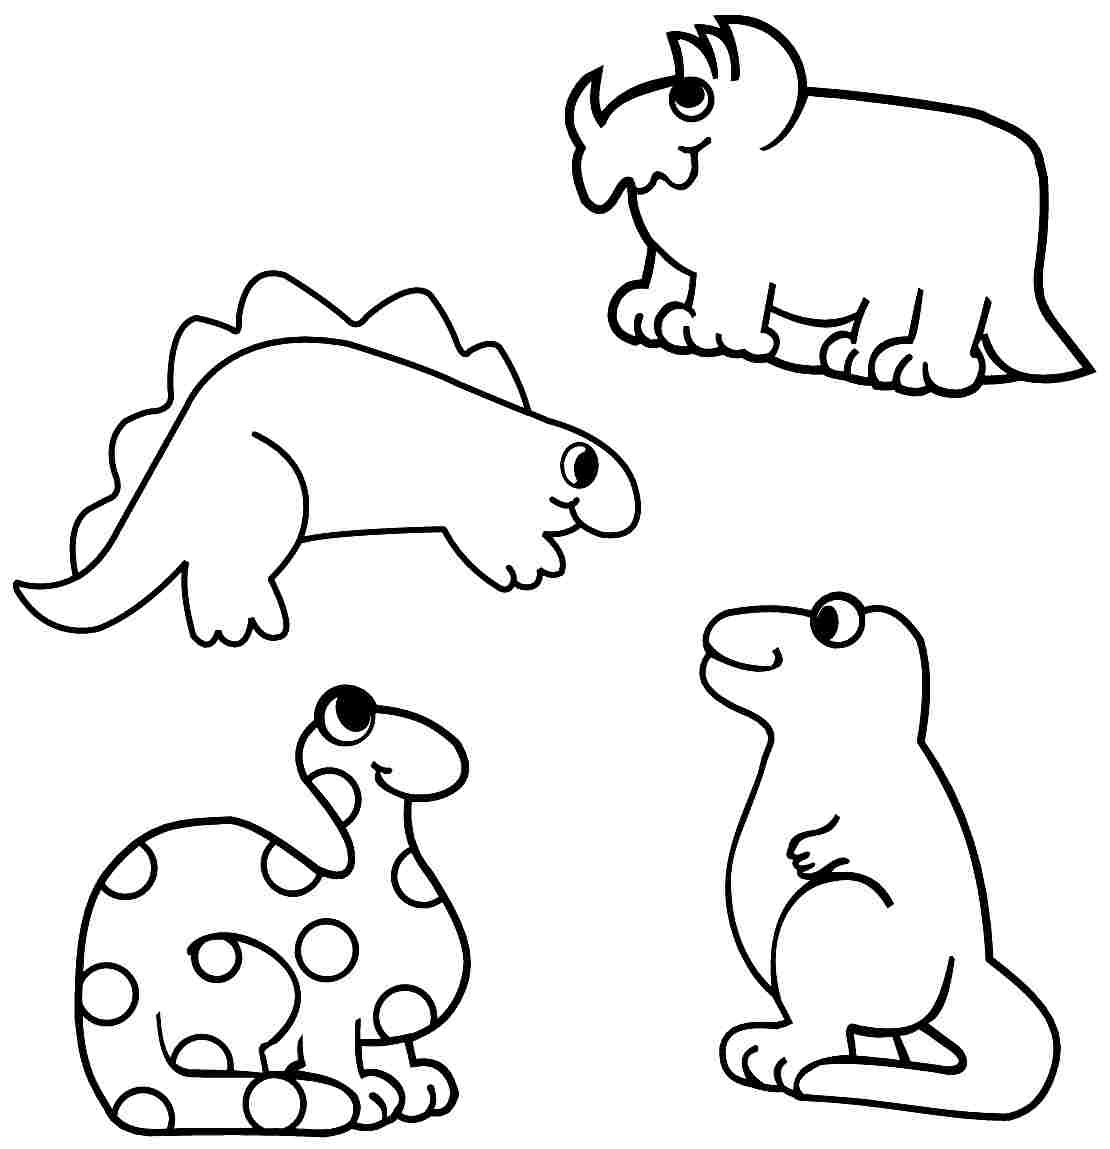 dino coloring pages coloring pages dinosaur free printable coloring pages pages dino coloring 1 2